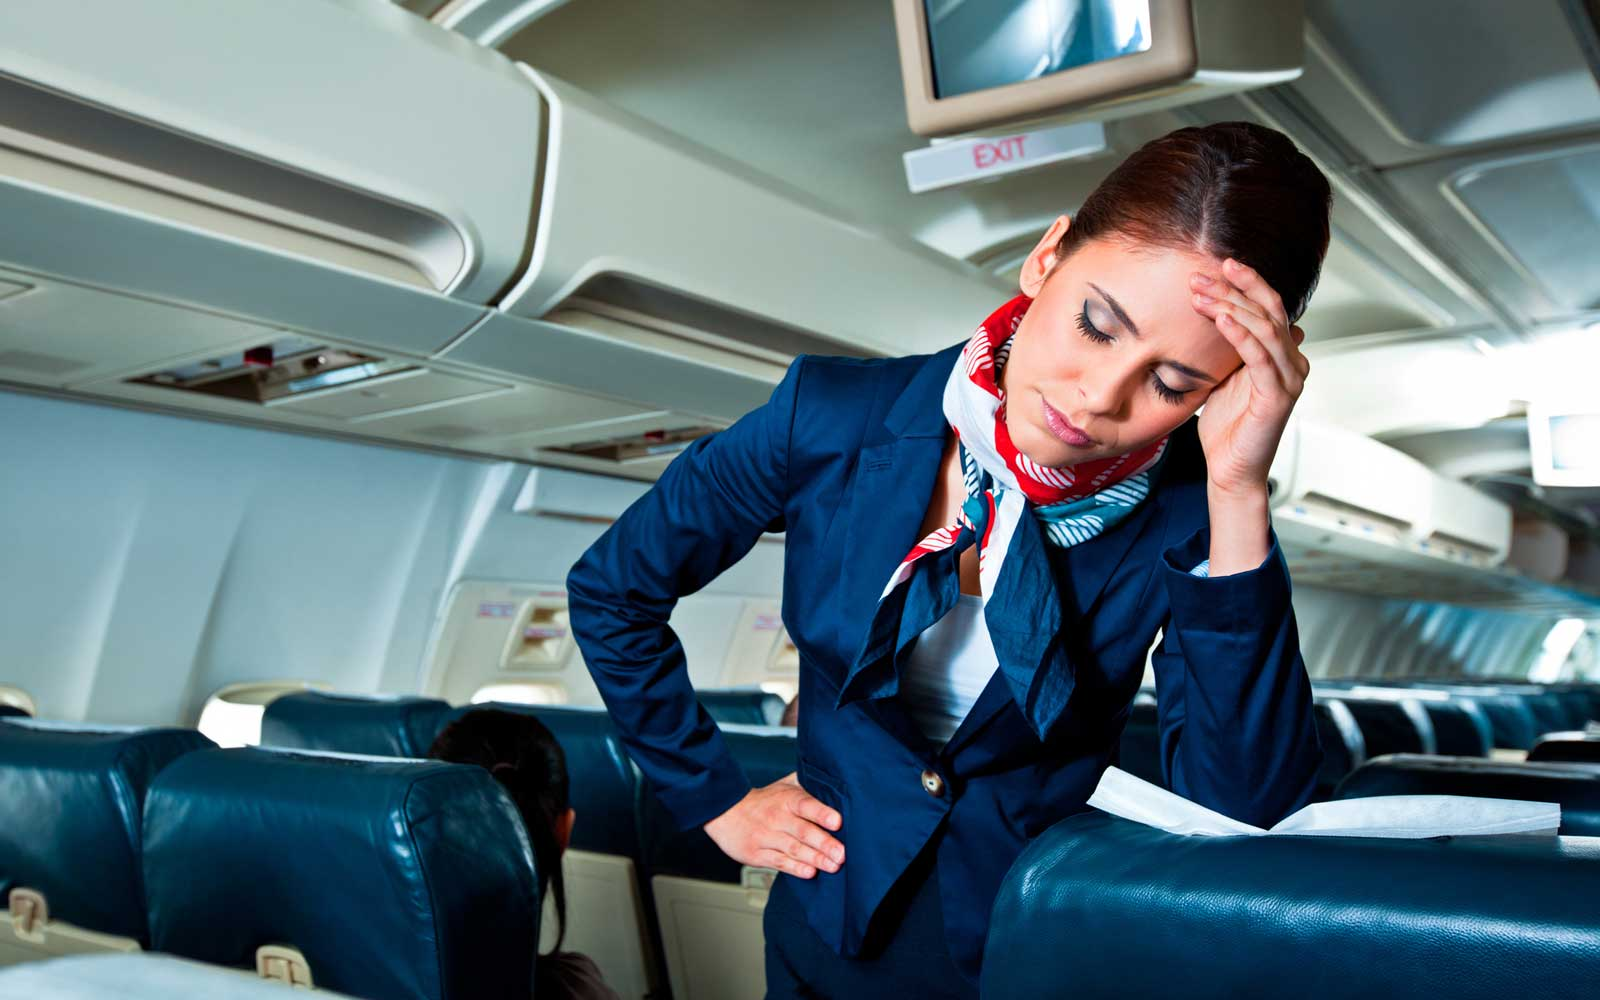 What Airline Workers Wish They Could Tell Passengers